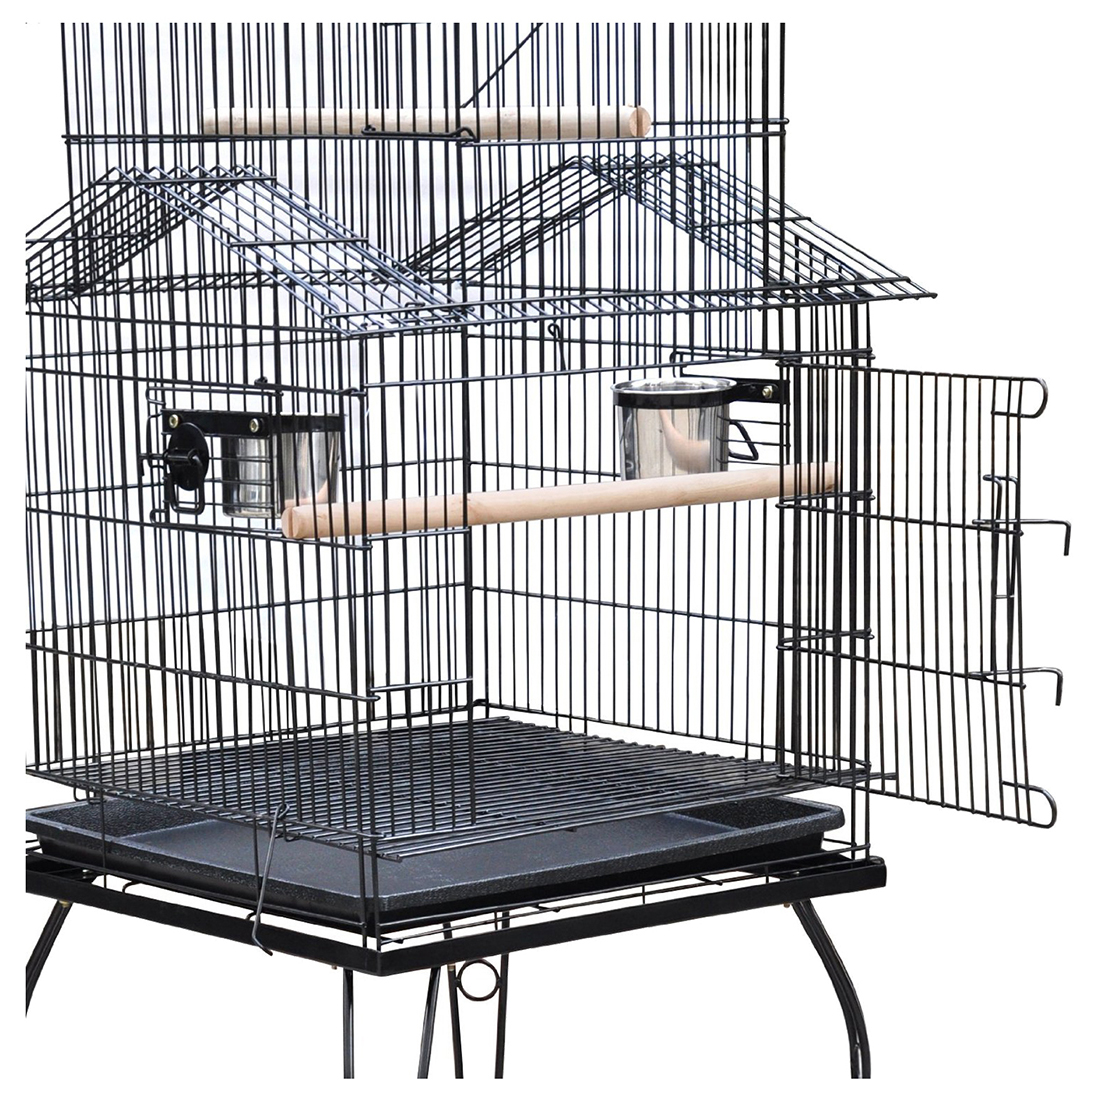 Large-scale Iron Wire Parrort Large Bird Cage J6J2